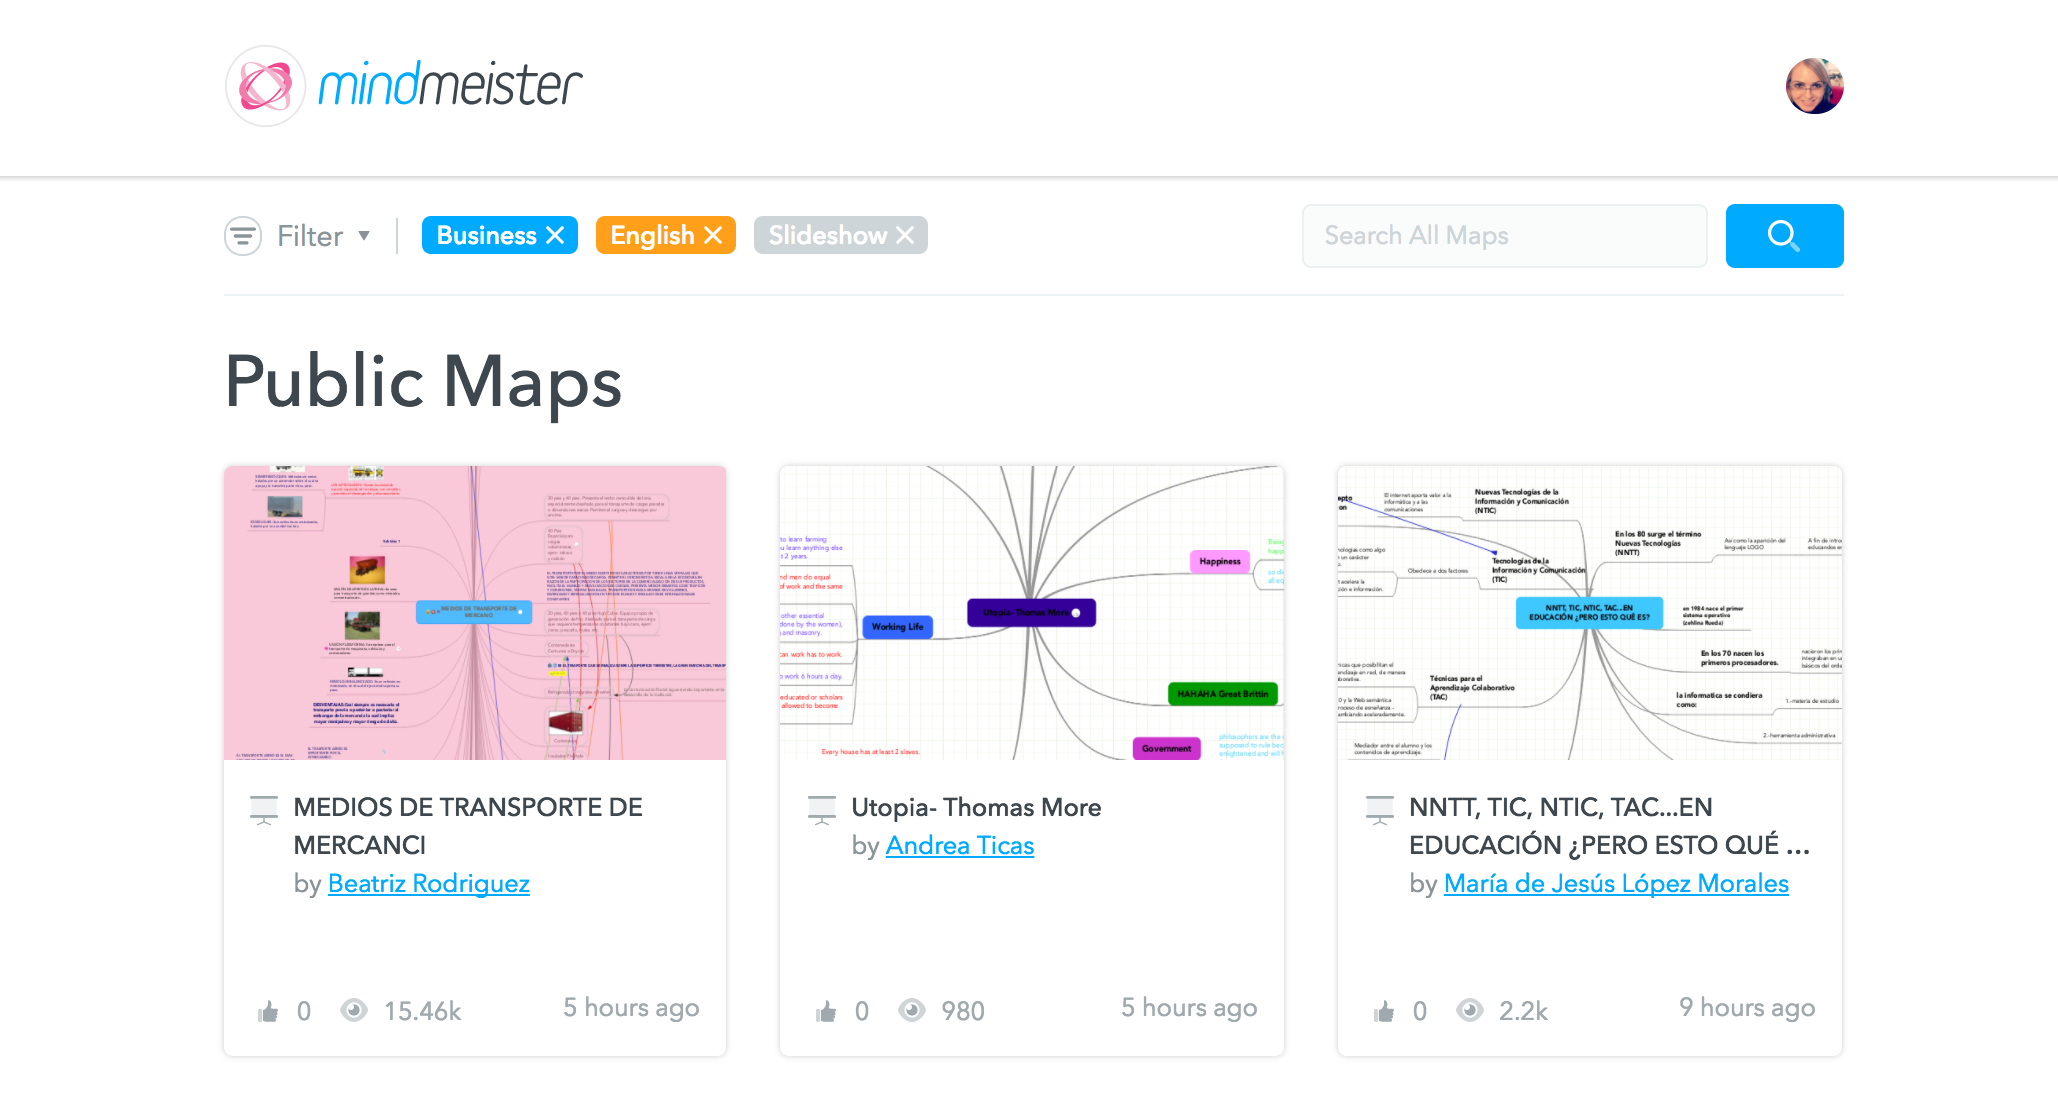 Filter options in MindMeister's public map library